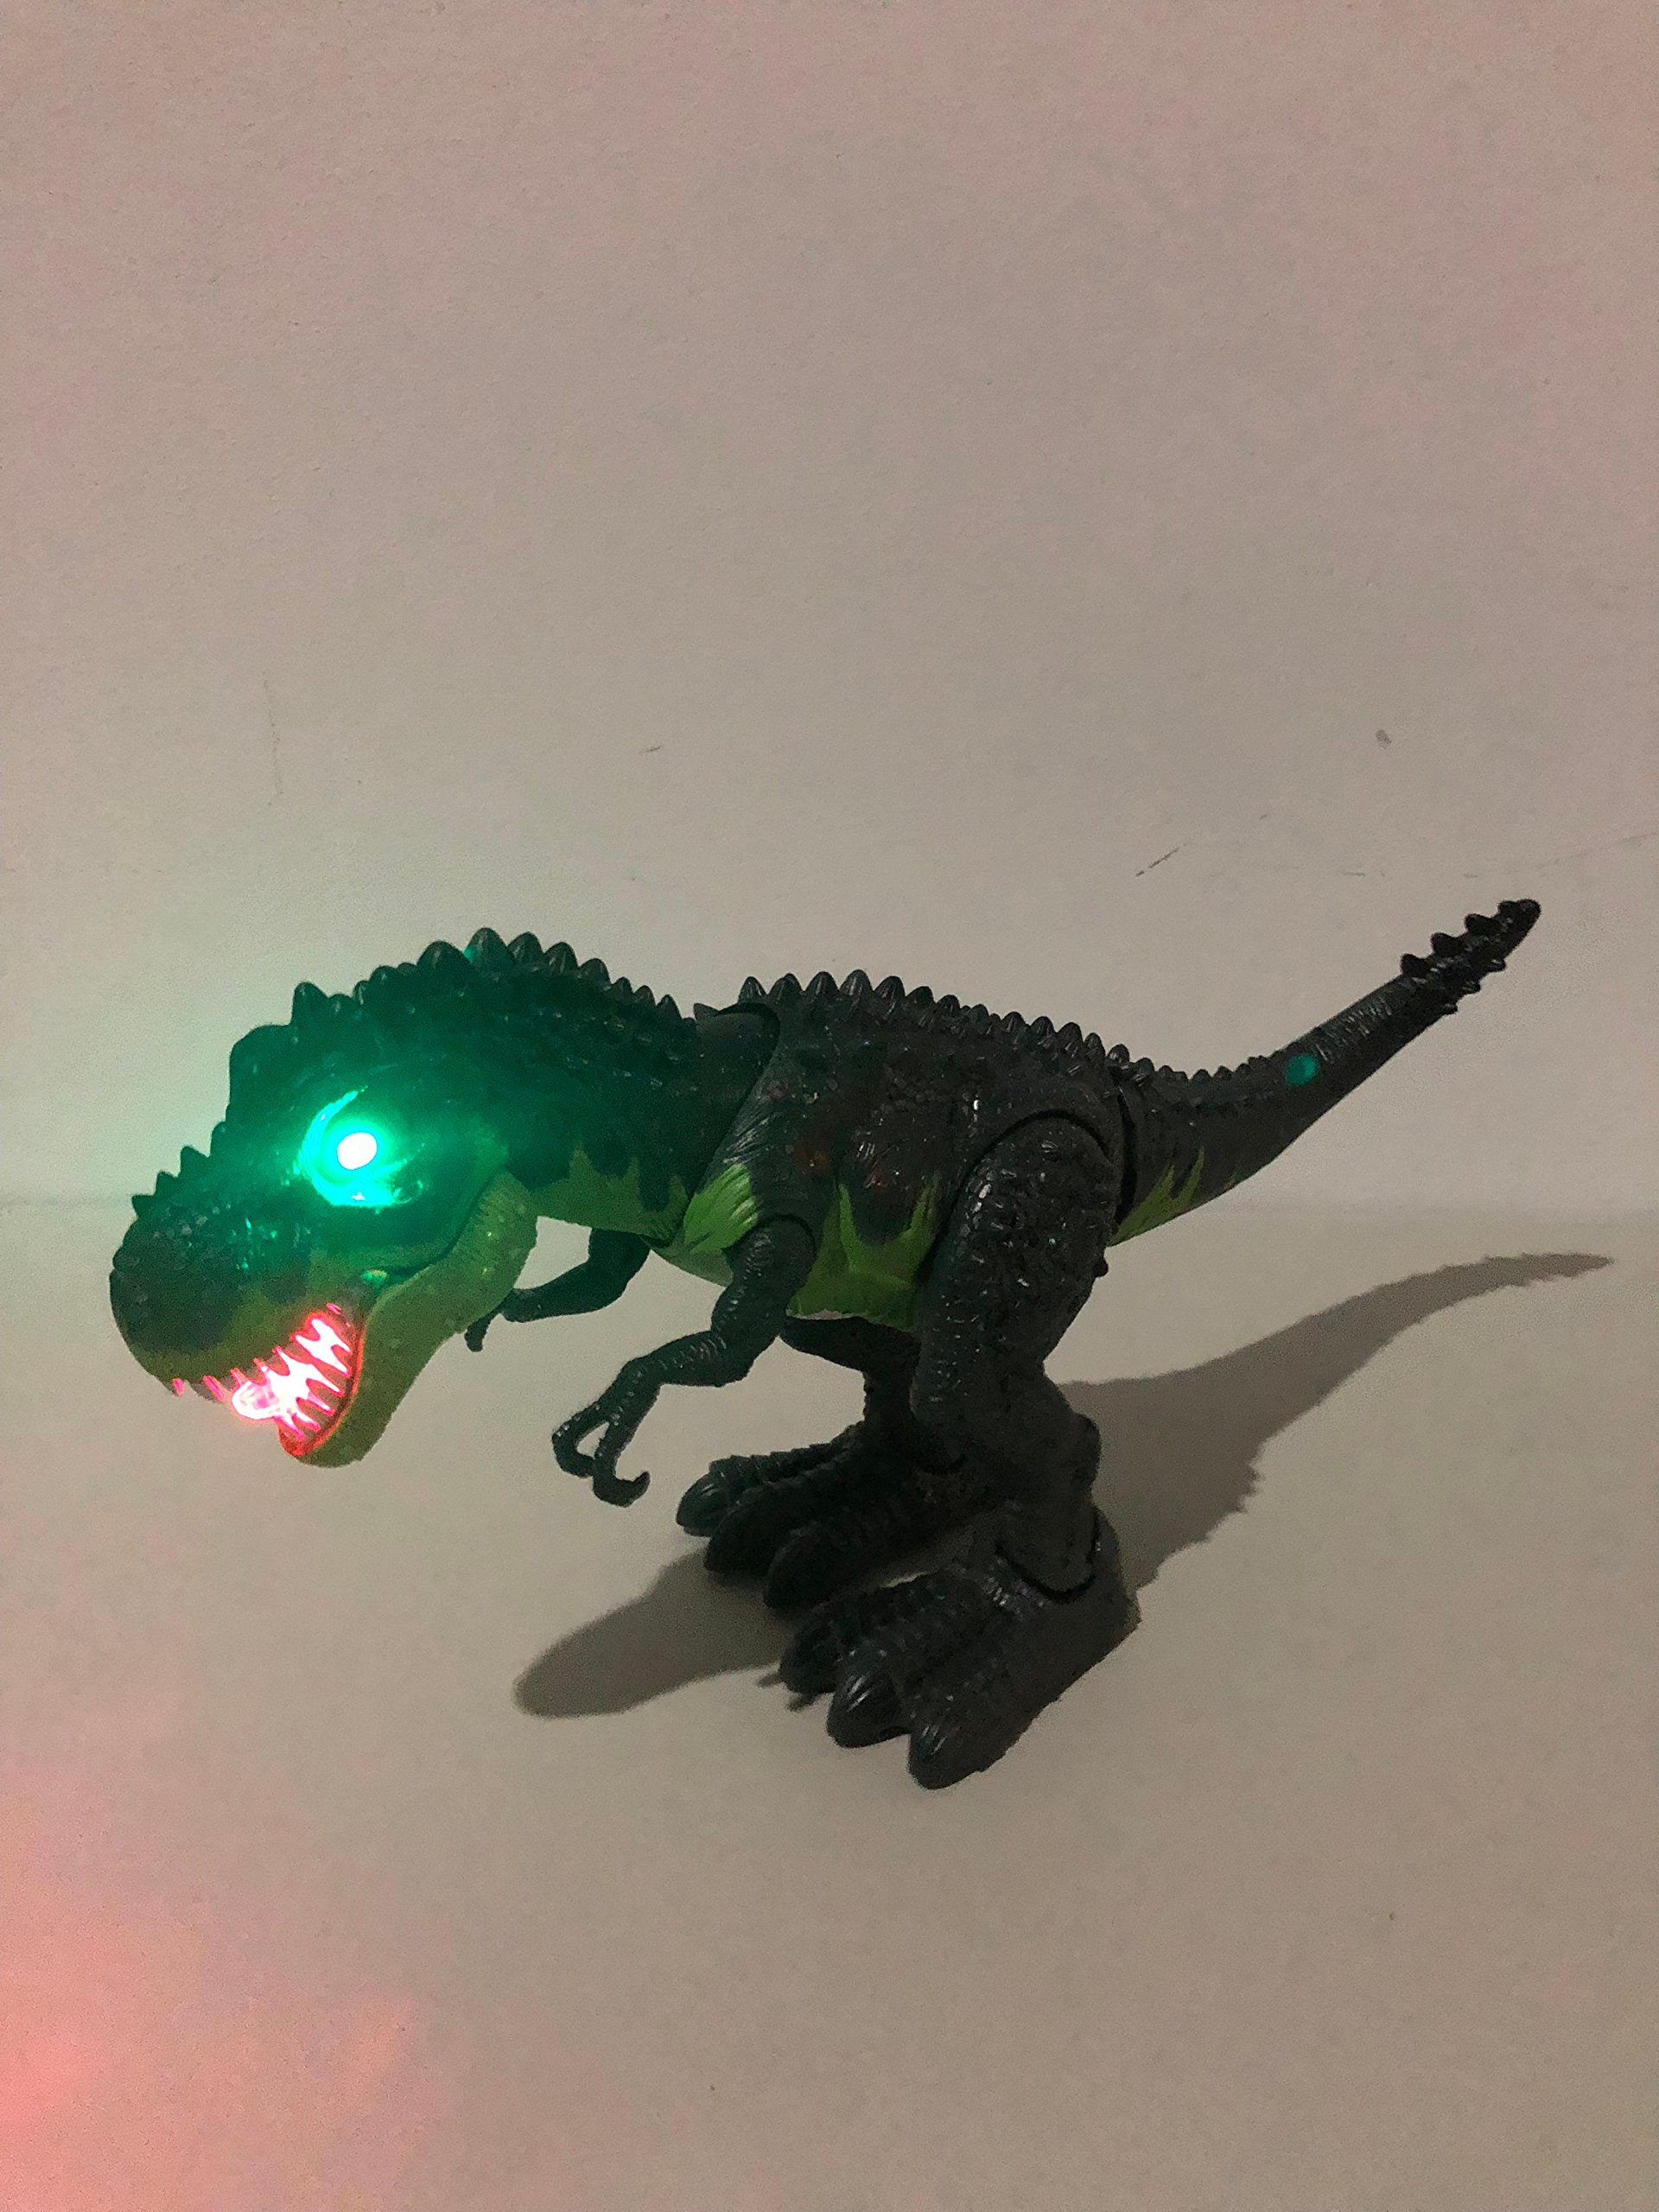 SY WonderPlay Tyrannosaurus T-Rex Dinosaur with Lights and Realistic Sounds Action Figure Toy - Light Up Eyes, Awesome Sounds - Walks on Its Own! - Great Gift Boys 3+,Battery Operate (Green) by SY (Image #8)